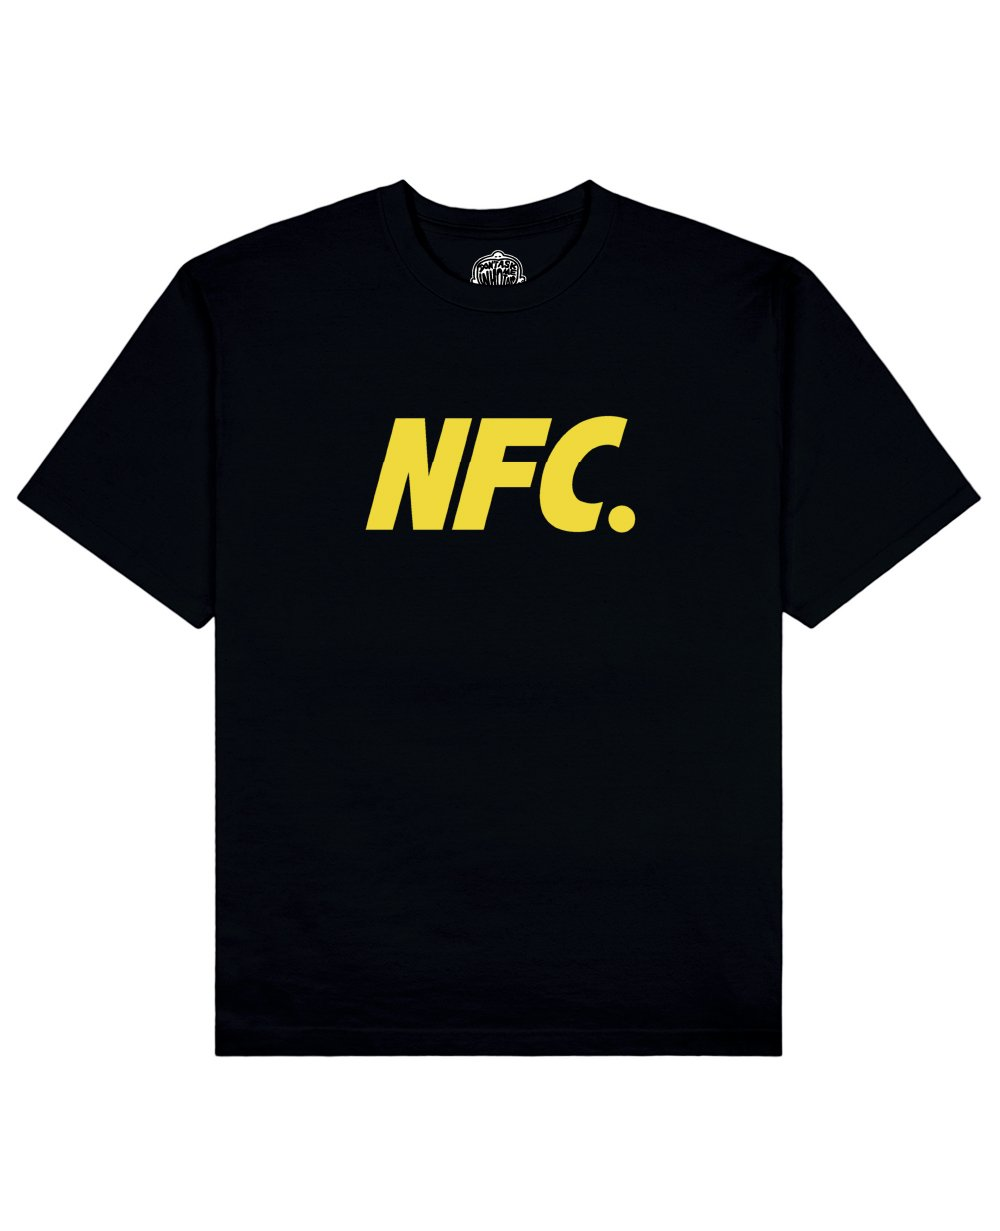 NFC Print T-shirt in Black - T-Shirts - Don't ask me who I am - BRANMA